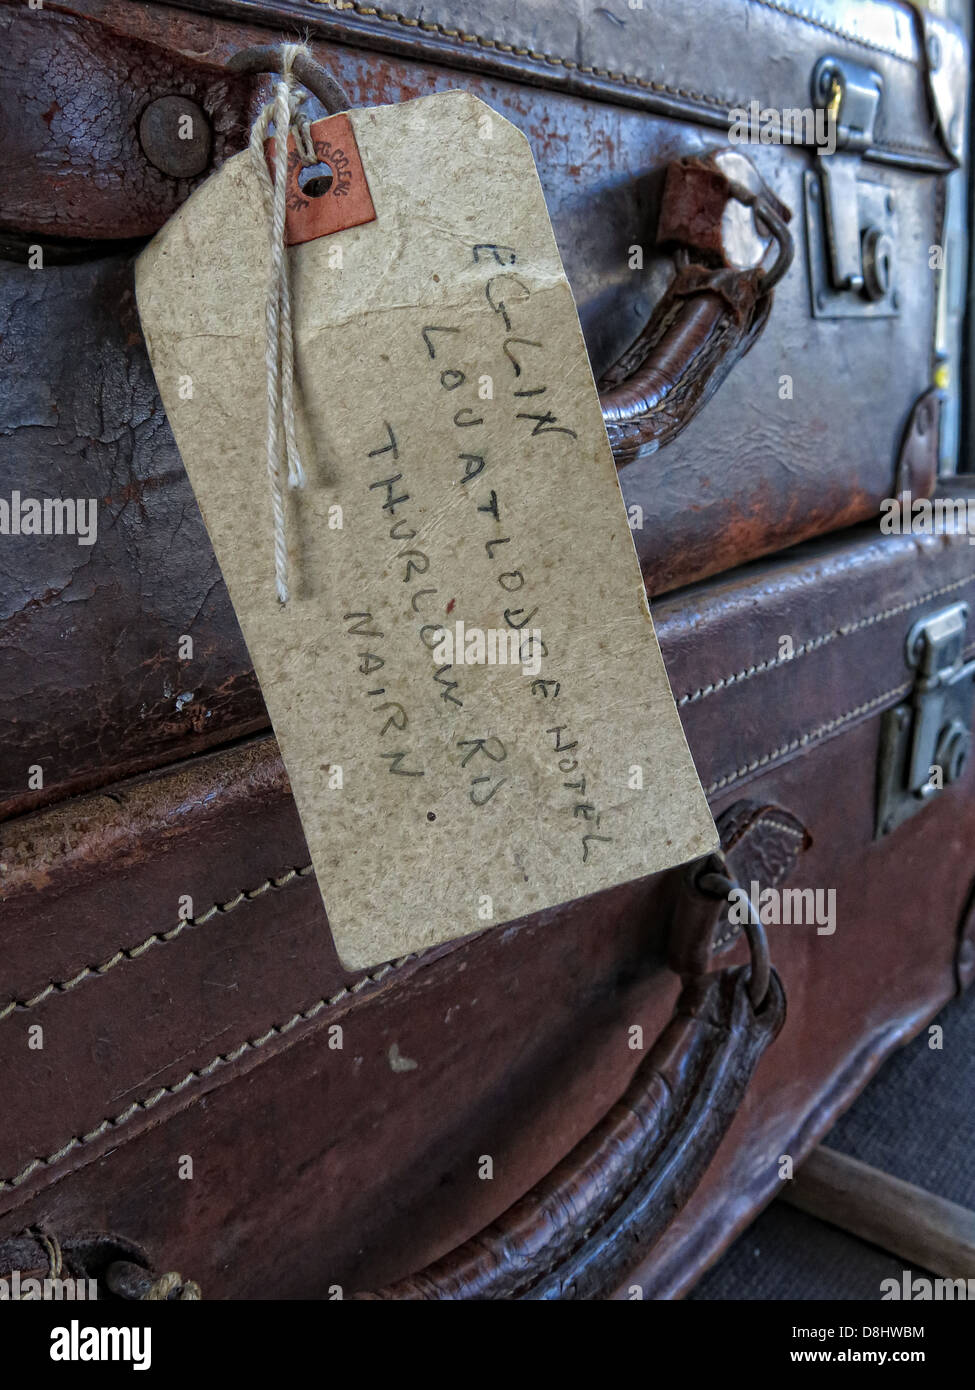 Old suitcases on a GWR English railway platform - Stock Image